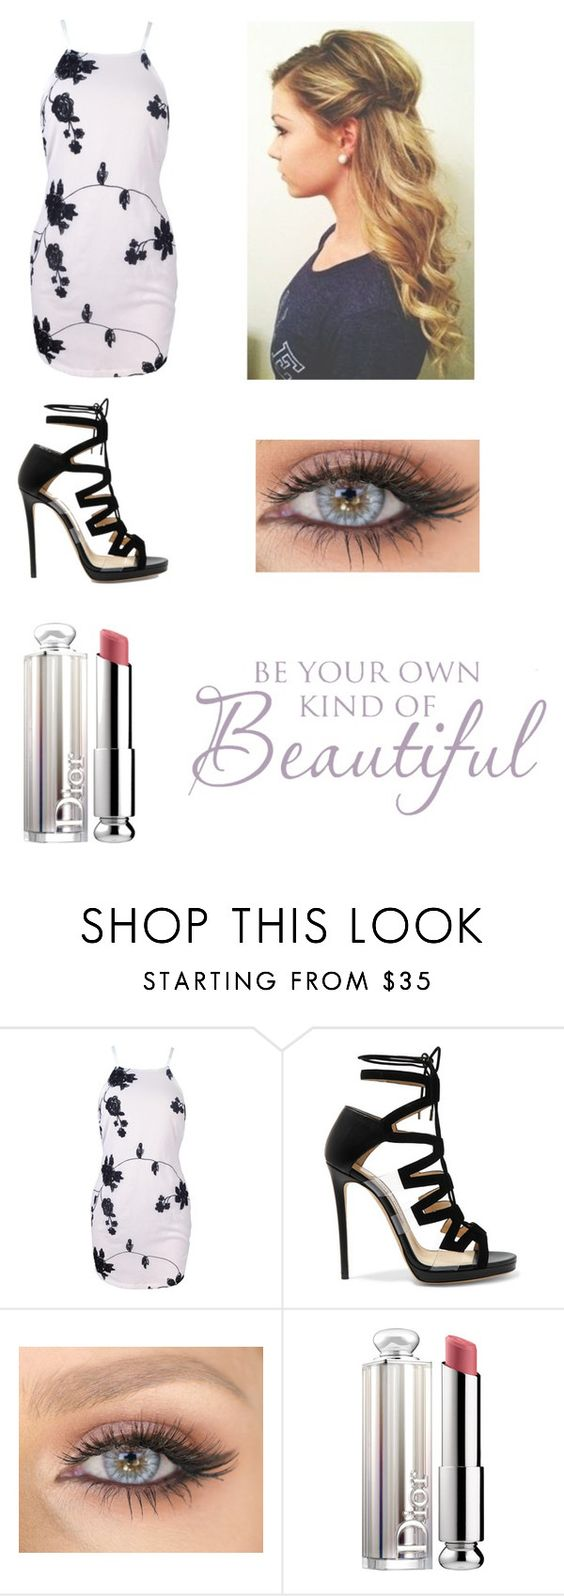 """Lavender Lies?"" by pandagirlcdm ❤ liked on Polyvore featuring Jimmy Choo and Christian Dior"